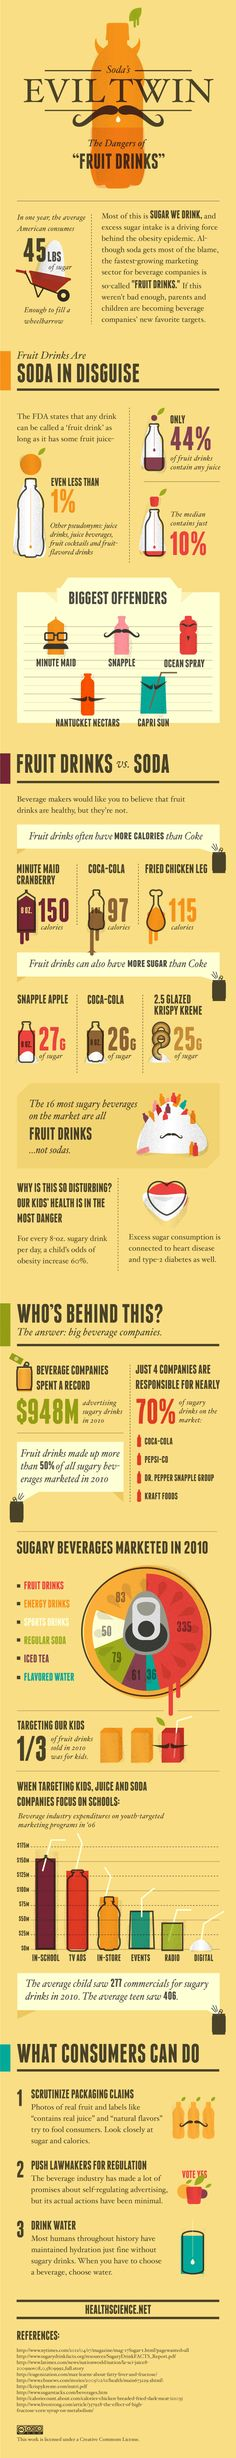 Soda's Evil Twin: The Dangers of Fruit Drinks (Infographic) : Discovery Channel. Did you know an  8-ounce serving of Snapple Apple has more sugar than 2 ½ Krispy Kreme glazed donuts!